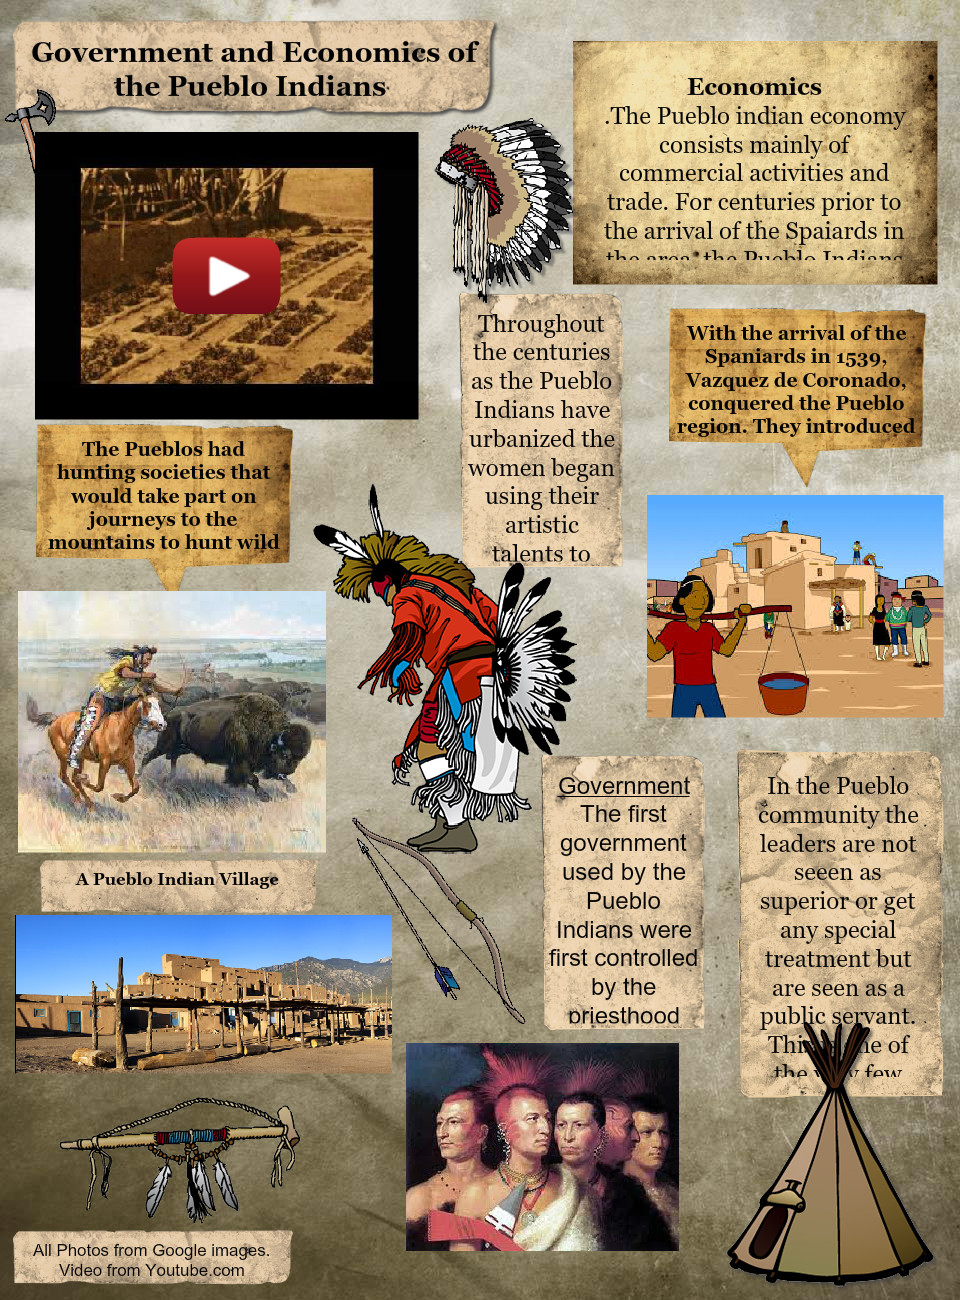 Government and Economics of the Pueblo Indians